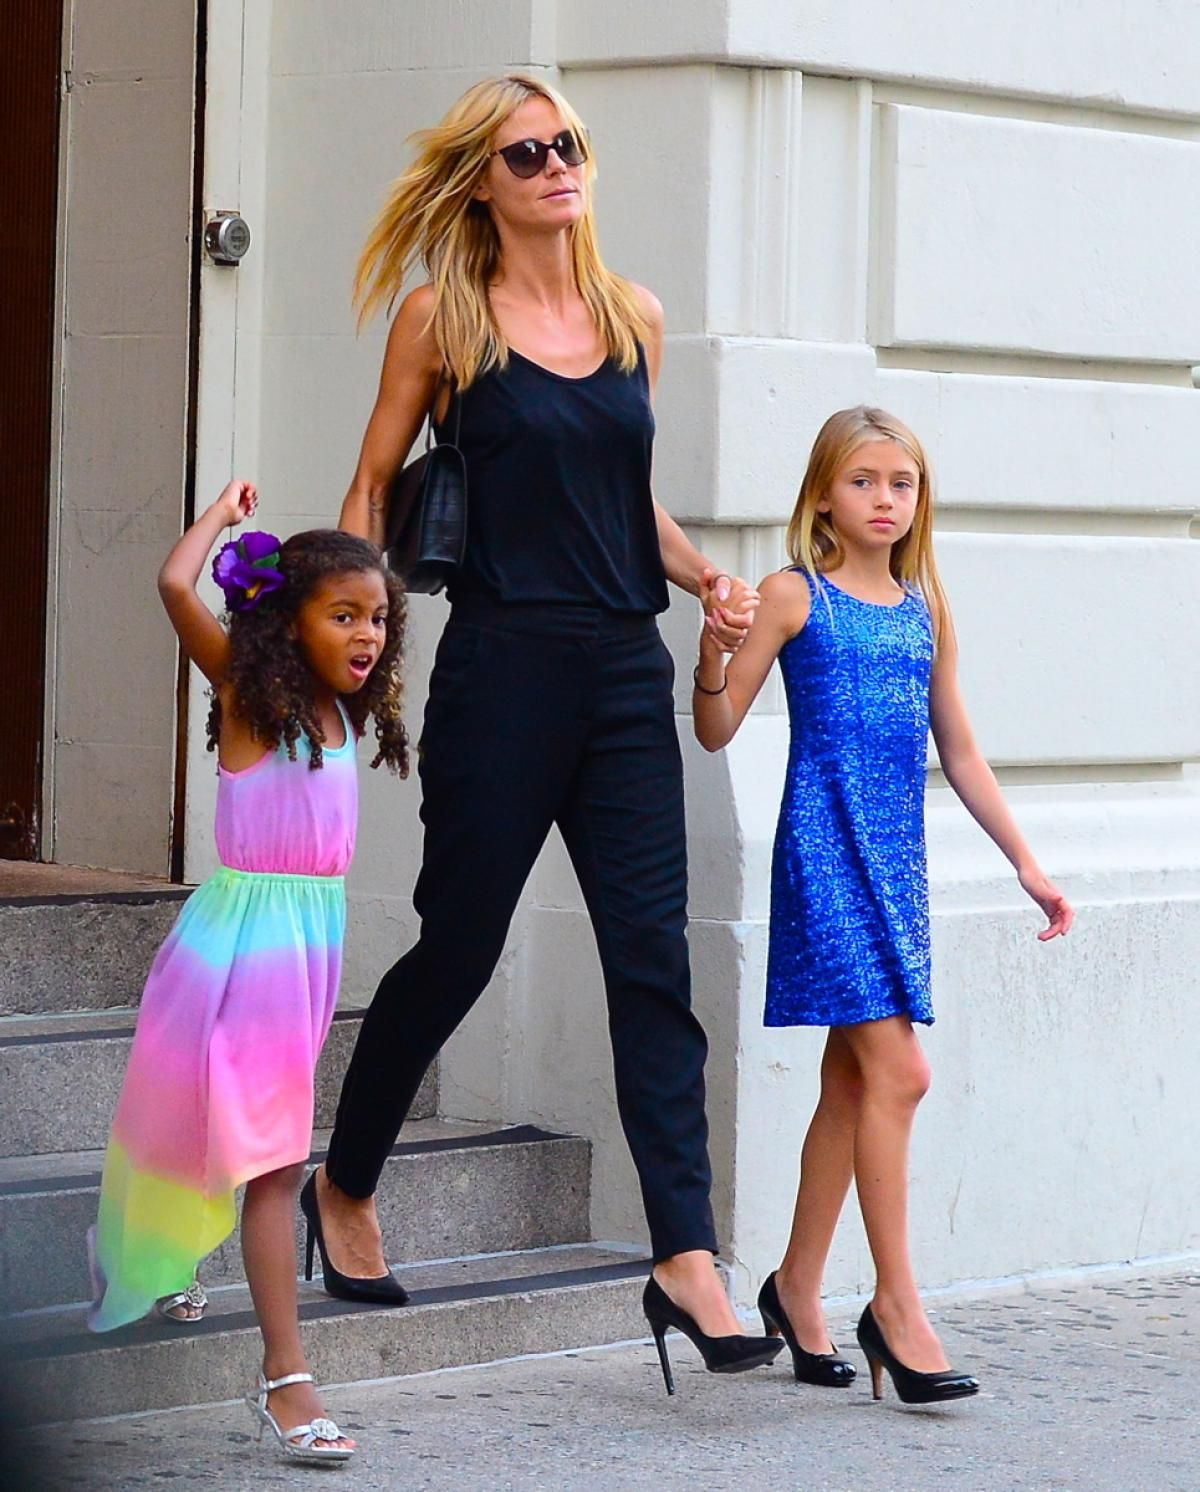 586392d92fe28 The family that wears heels together stays together? Heidi Klum took  daughters Lou and Leni Samuel out to Nobu restaurant in New York City on  July 19, 2014.